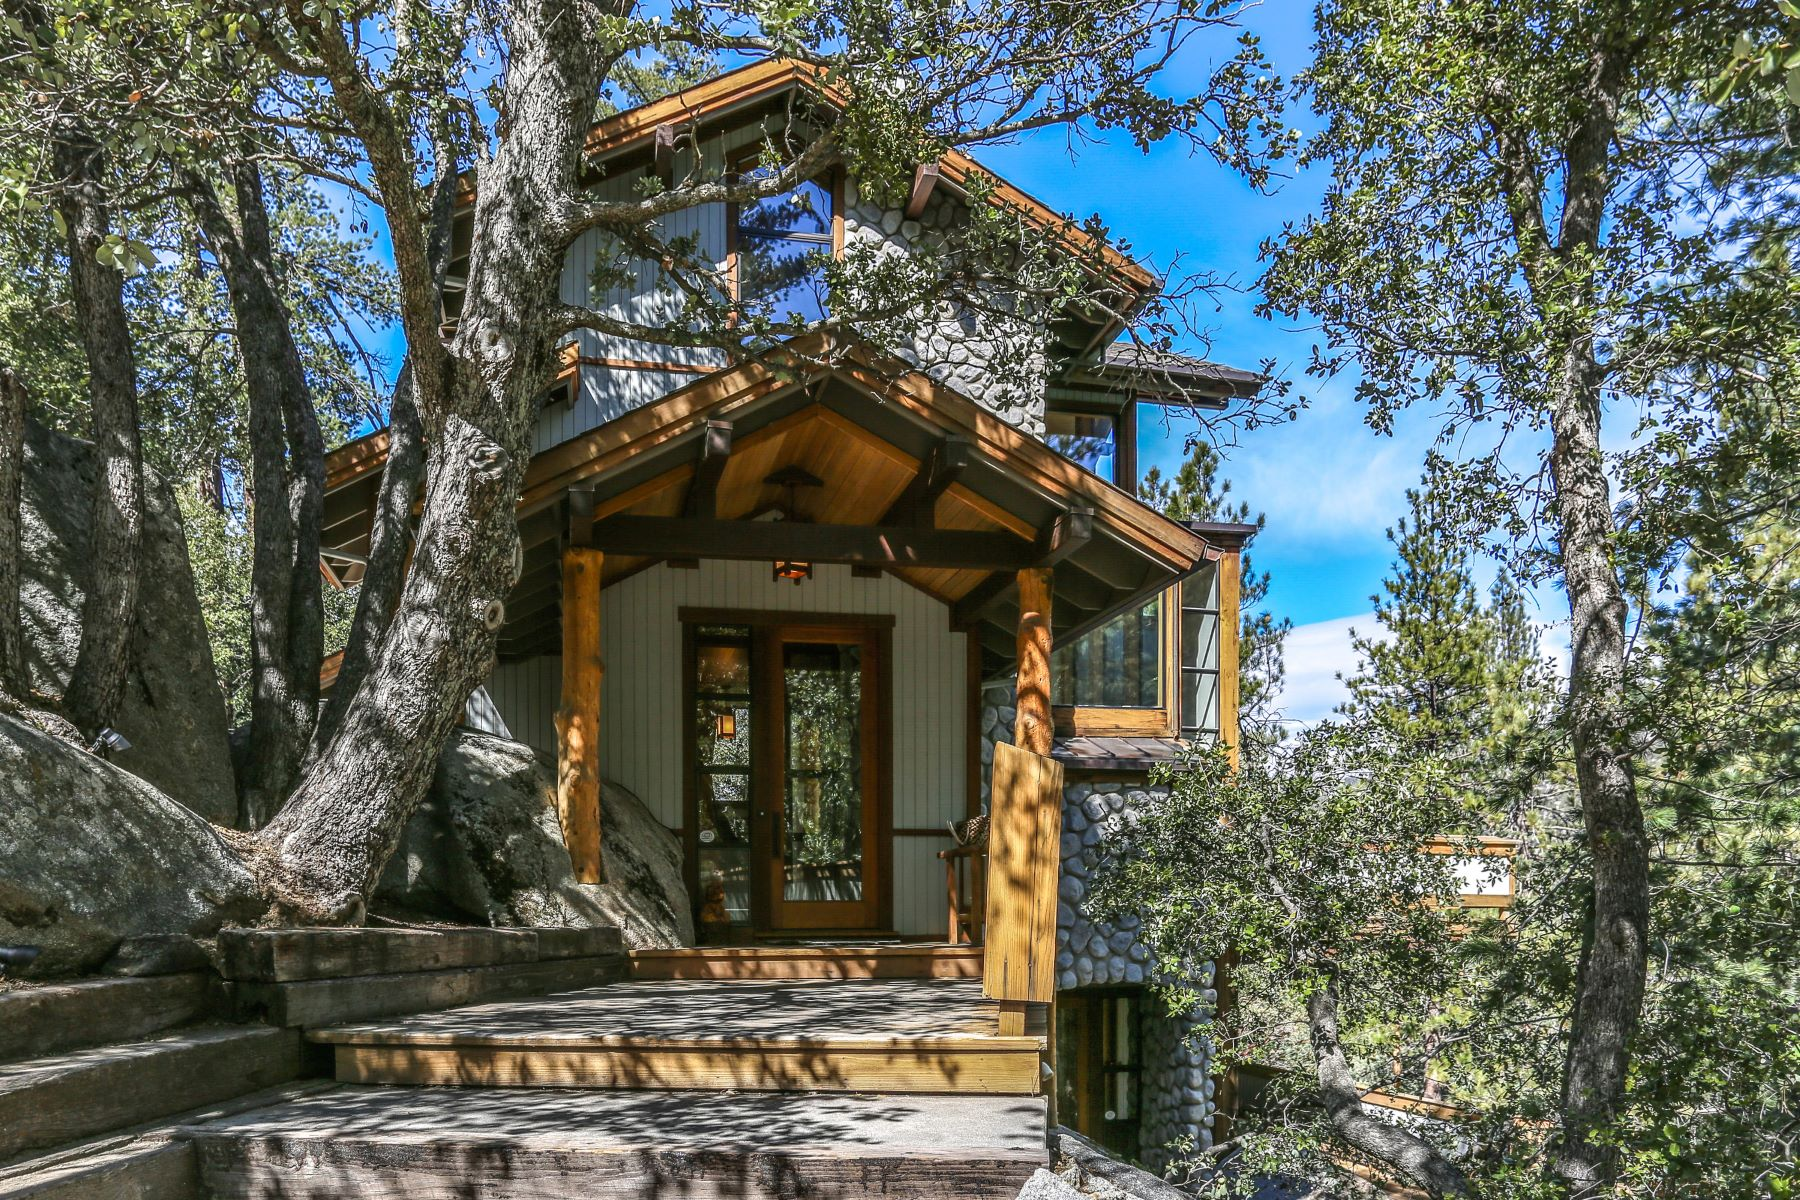 Single Family Homes for Active at 54789 Wildwood Dr Idyllwild, California 92549 United States